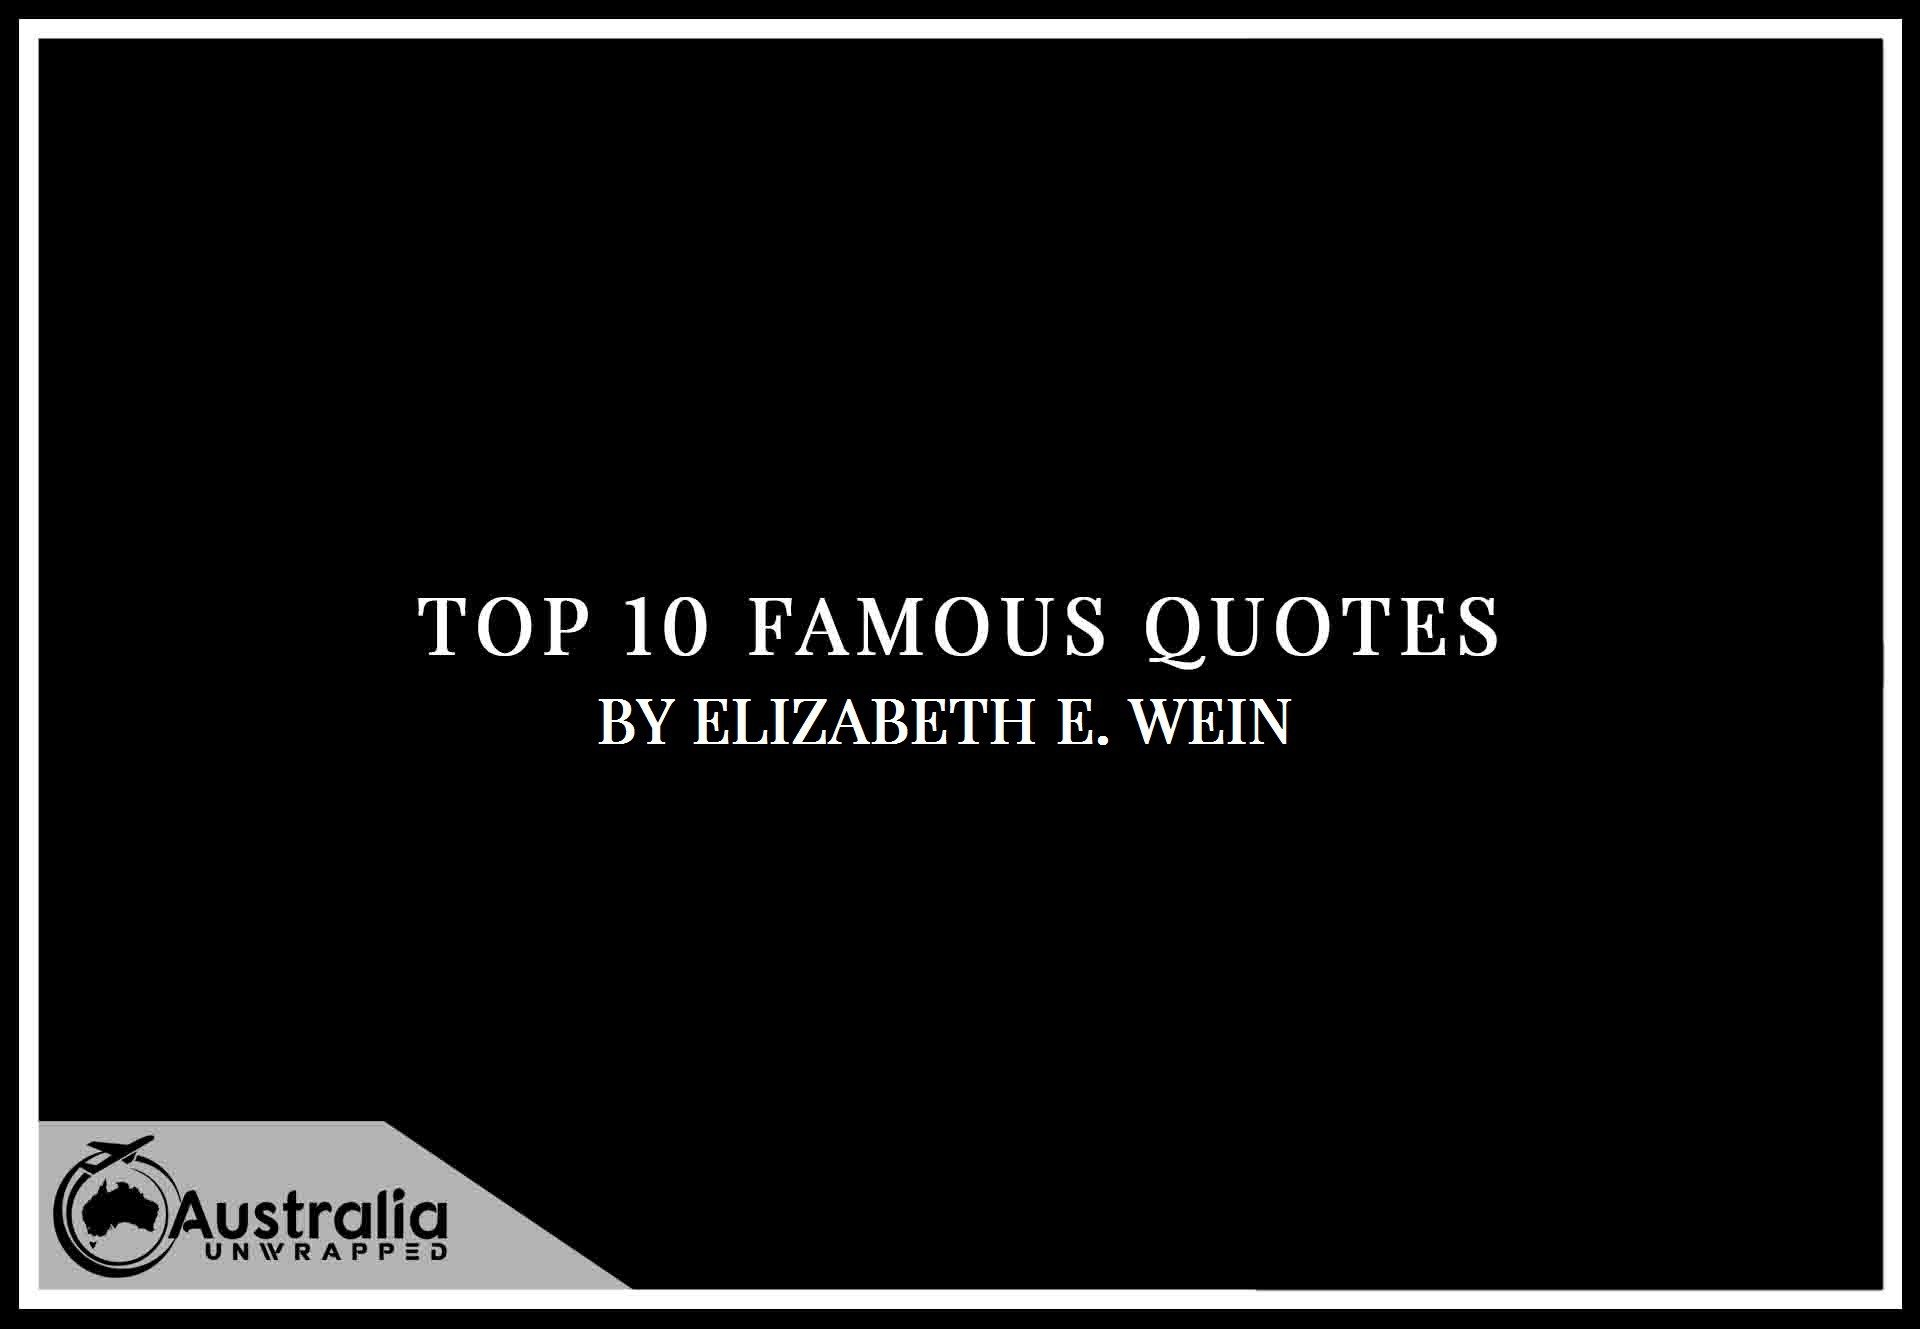 Elizabeth Wein's Top 10 Popular and Famous Quotes